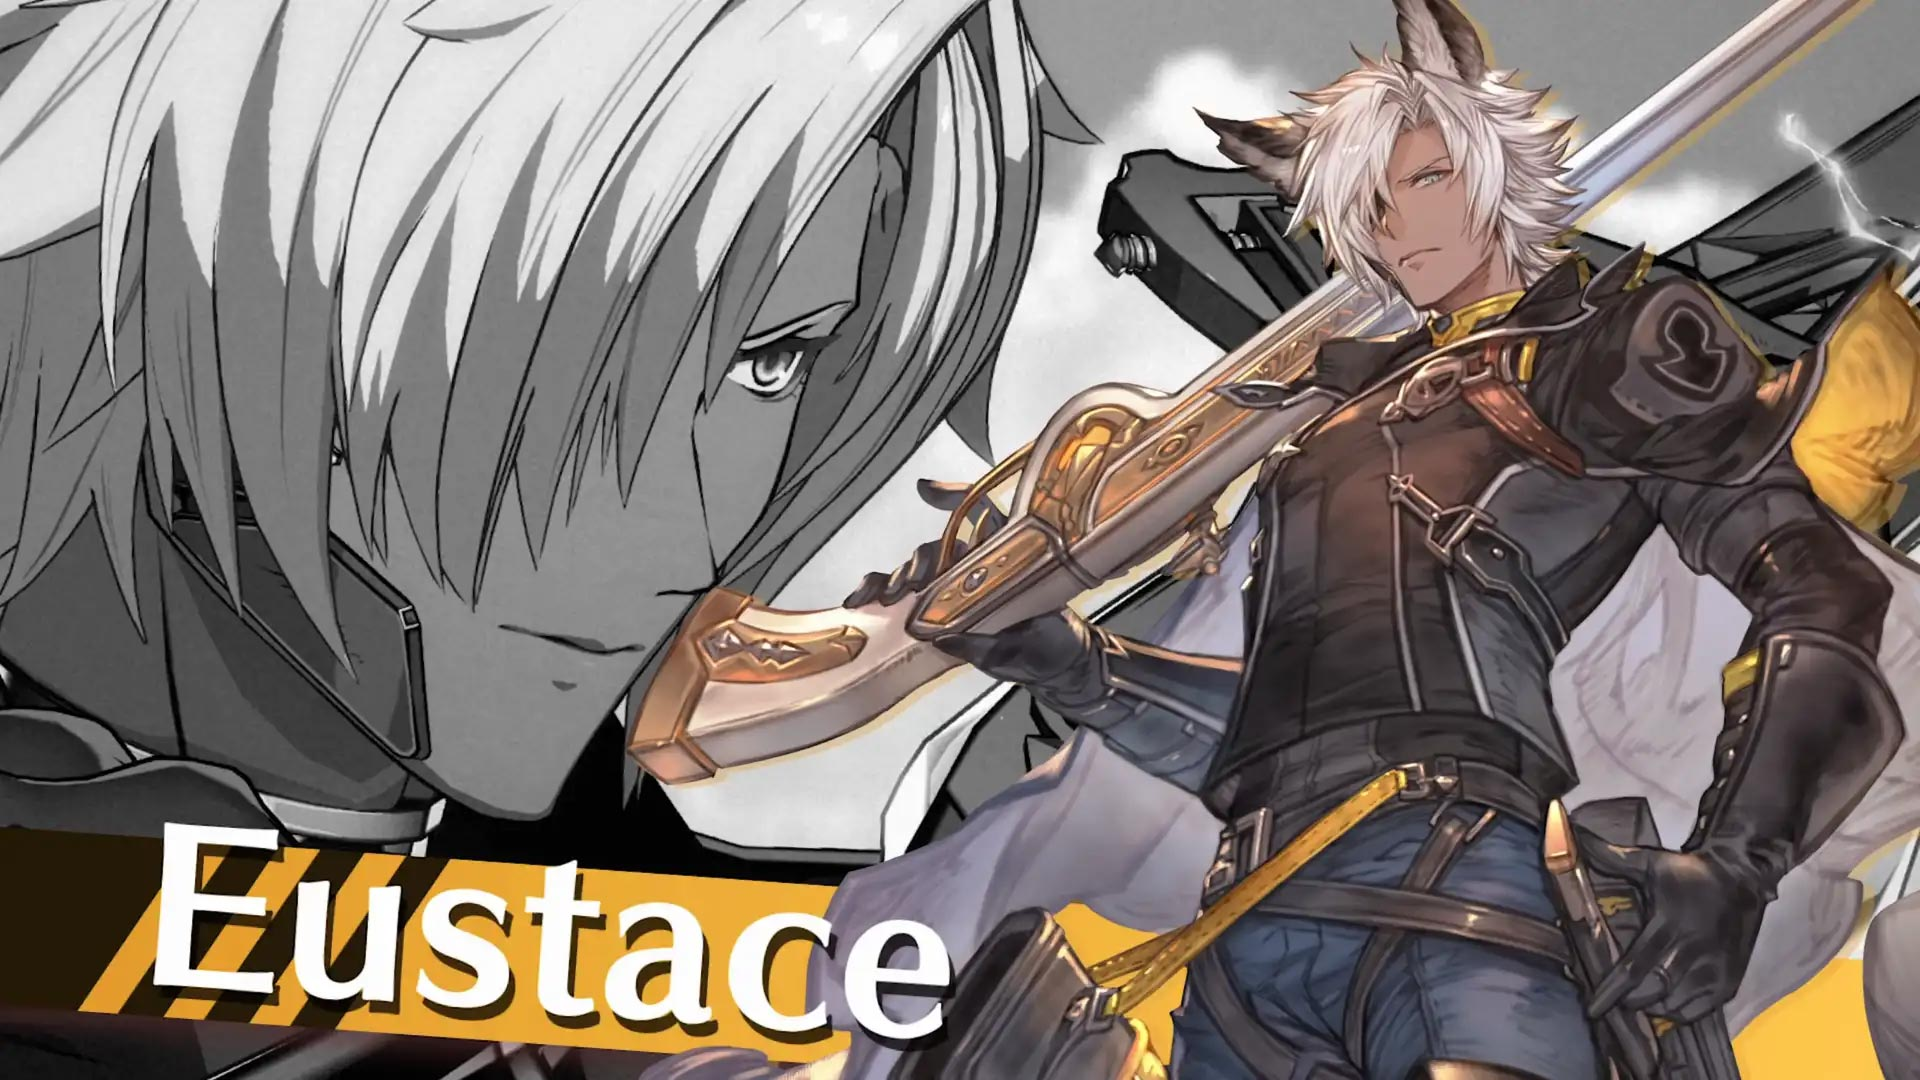 Granblue Fantasy Versus Eustace Reveal Trailer Gallery 3 out of 11 image gallery